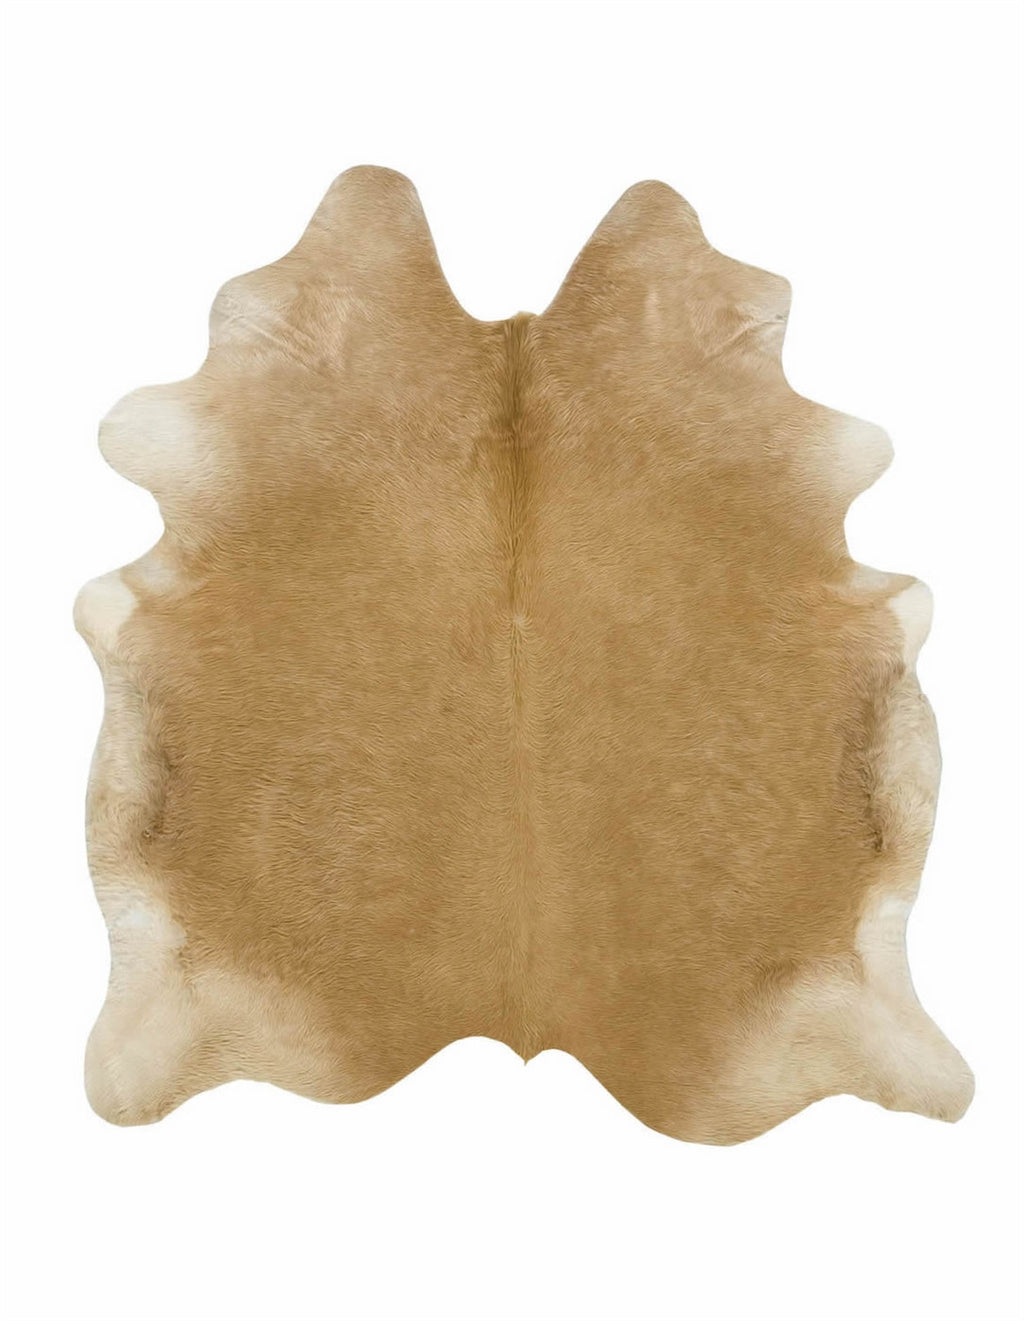 Large solid dark palomino cowhide rug